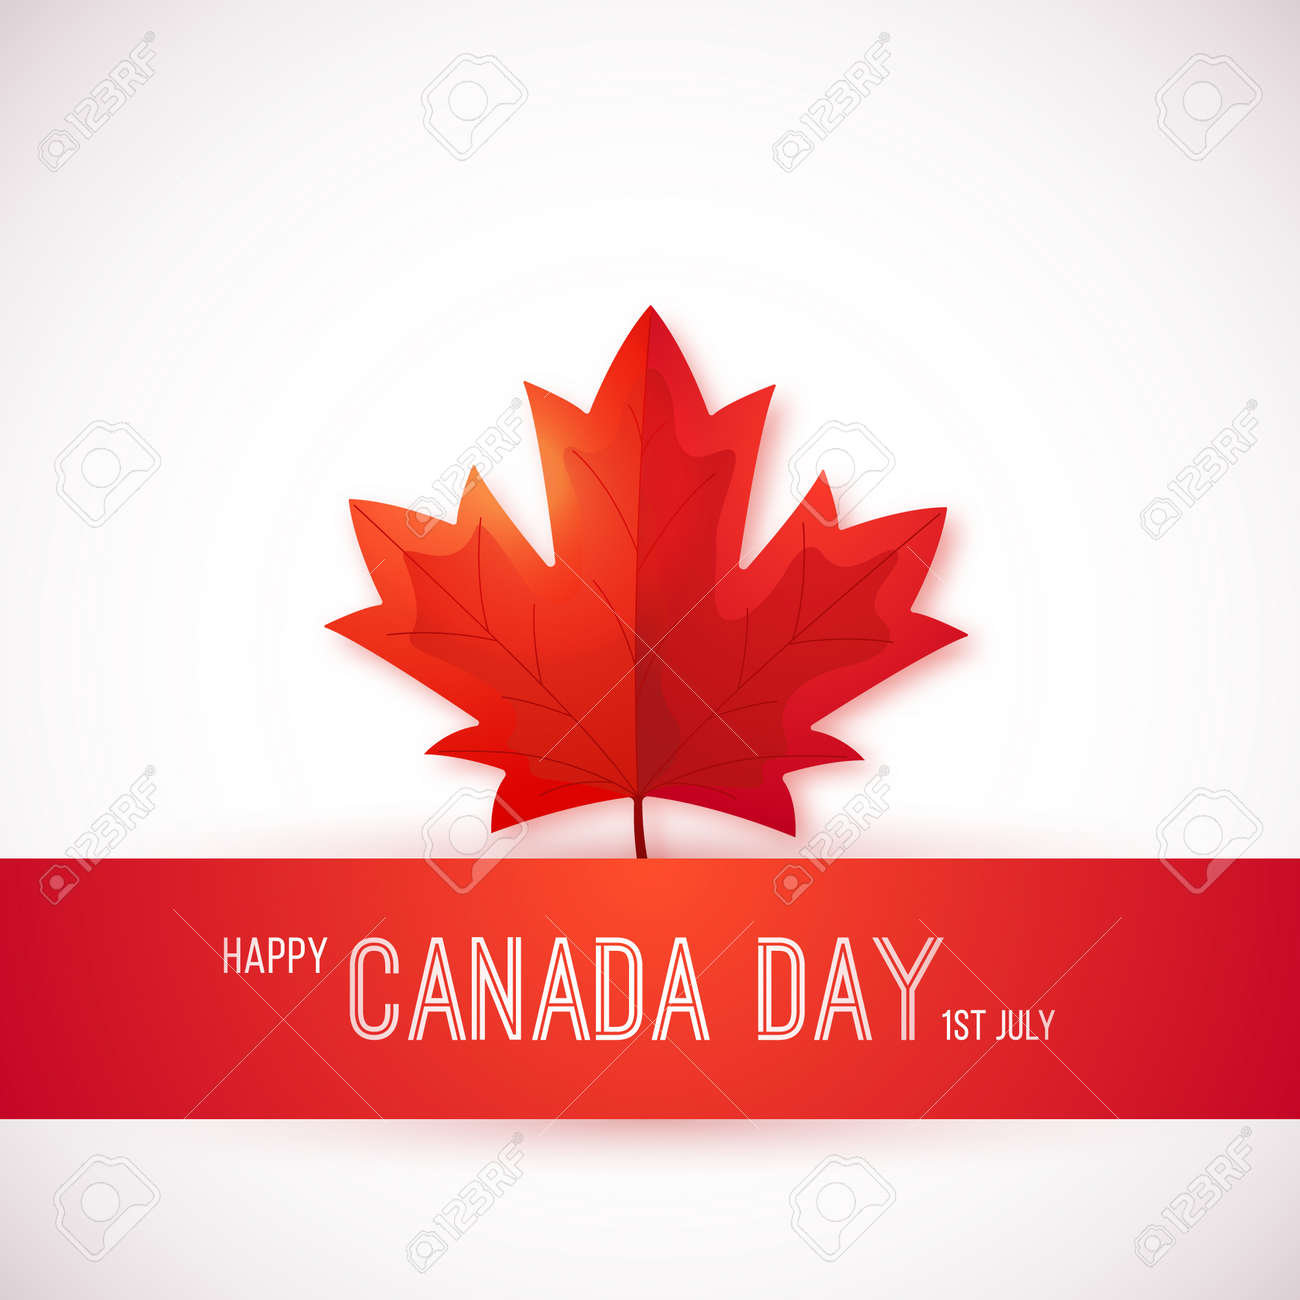 1st July, Canada Day. Design template with red maple leaf. Happy Canada day greeting card. Vector background. - 151165576